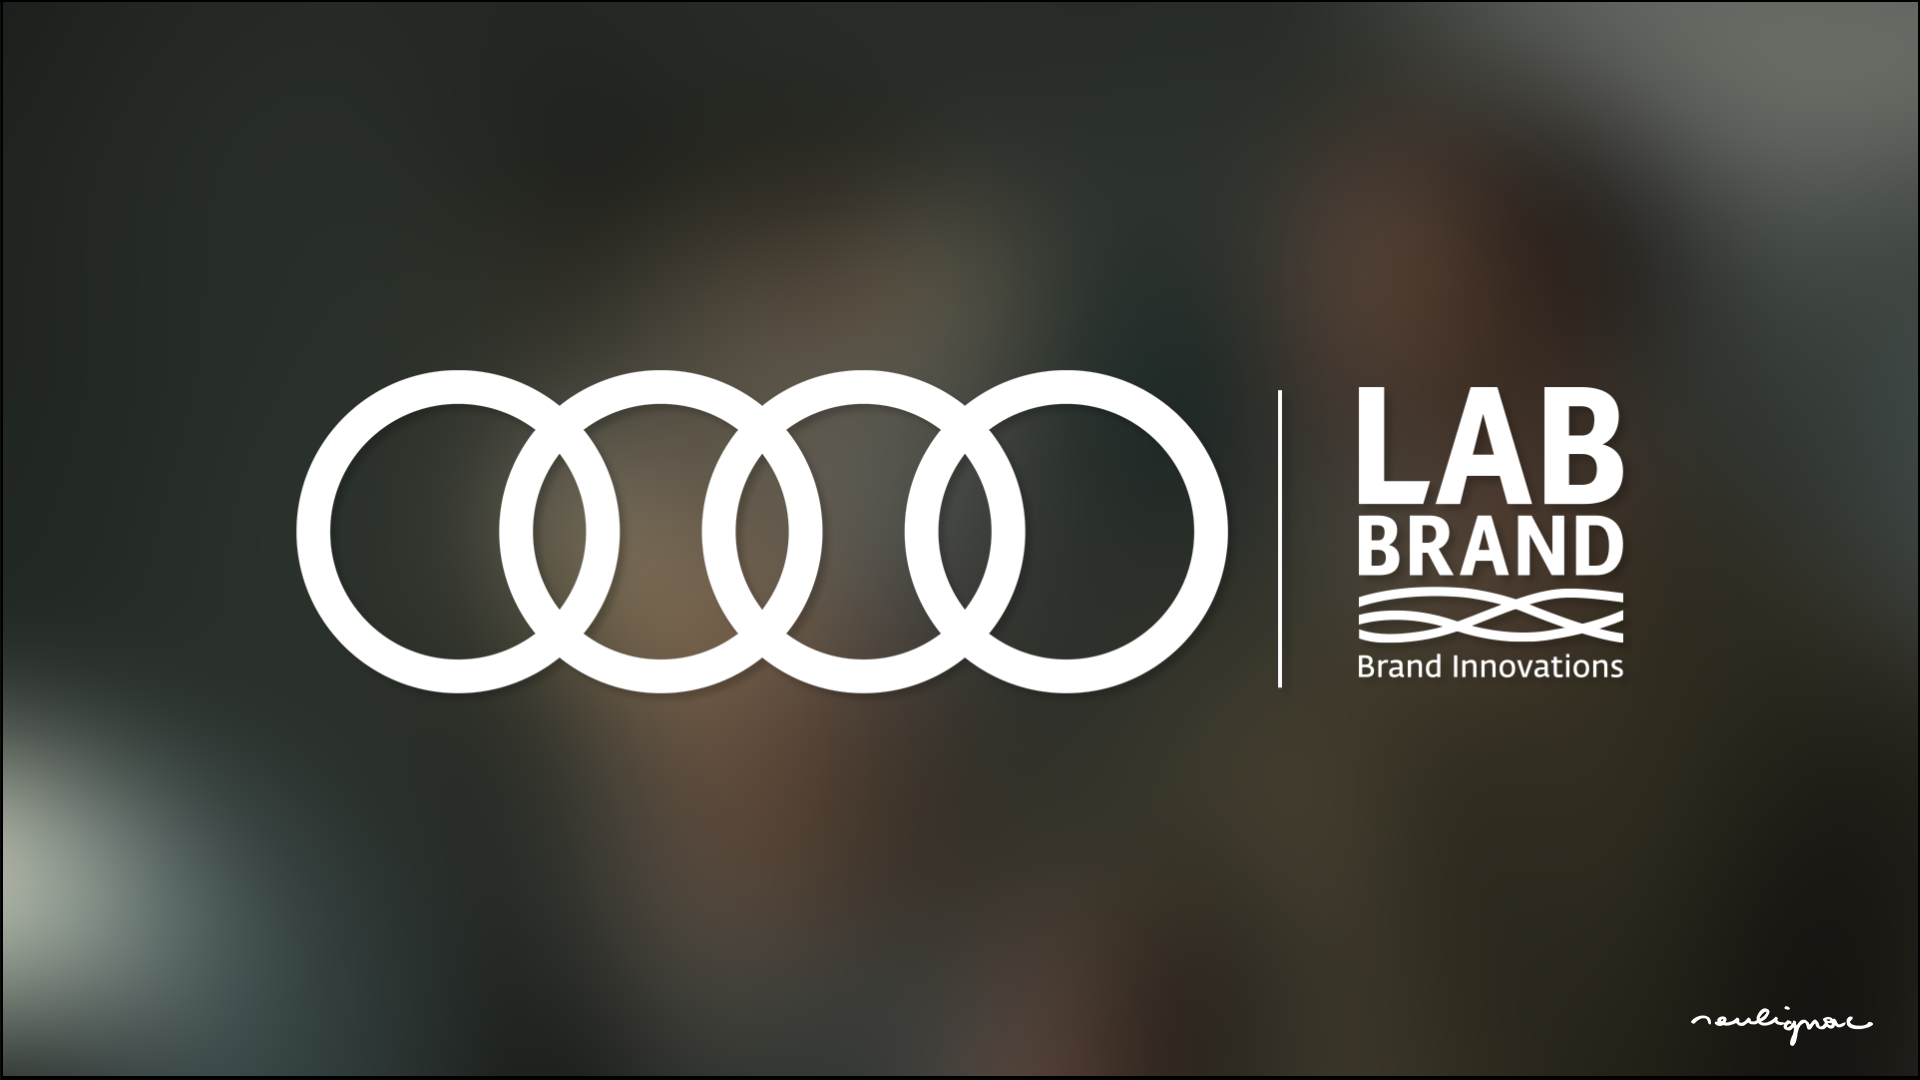 Audi China - Digital Assistant Researches - Logo Partnership - Art direction for video storyboard - Francois Soulignac, MADJOR Labbrand Shanghai, China